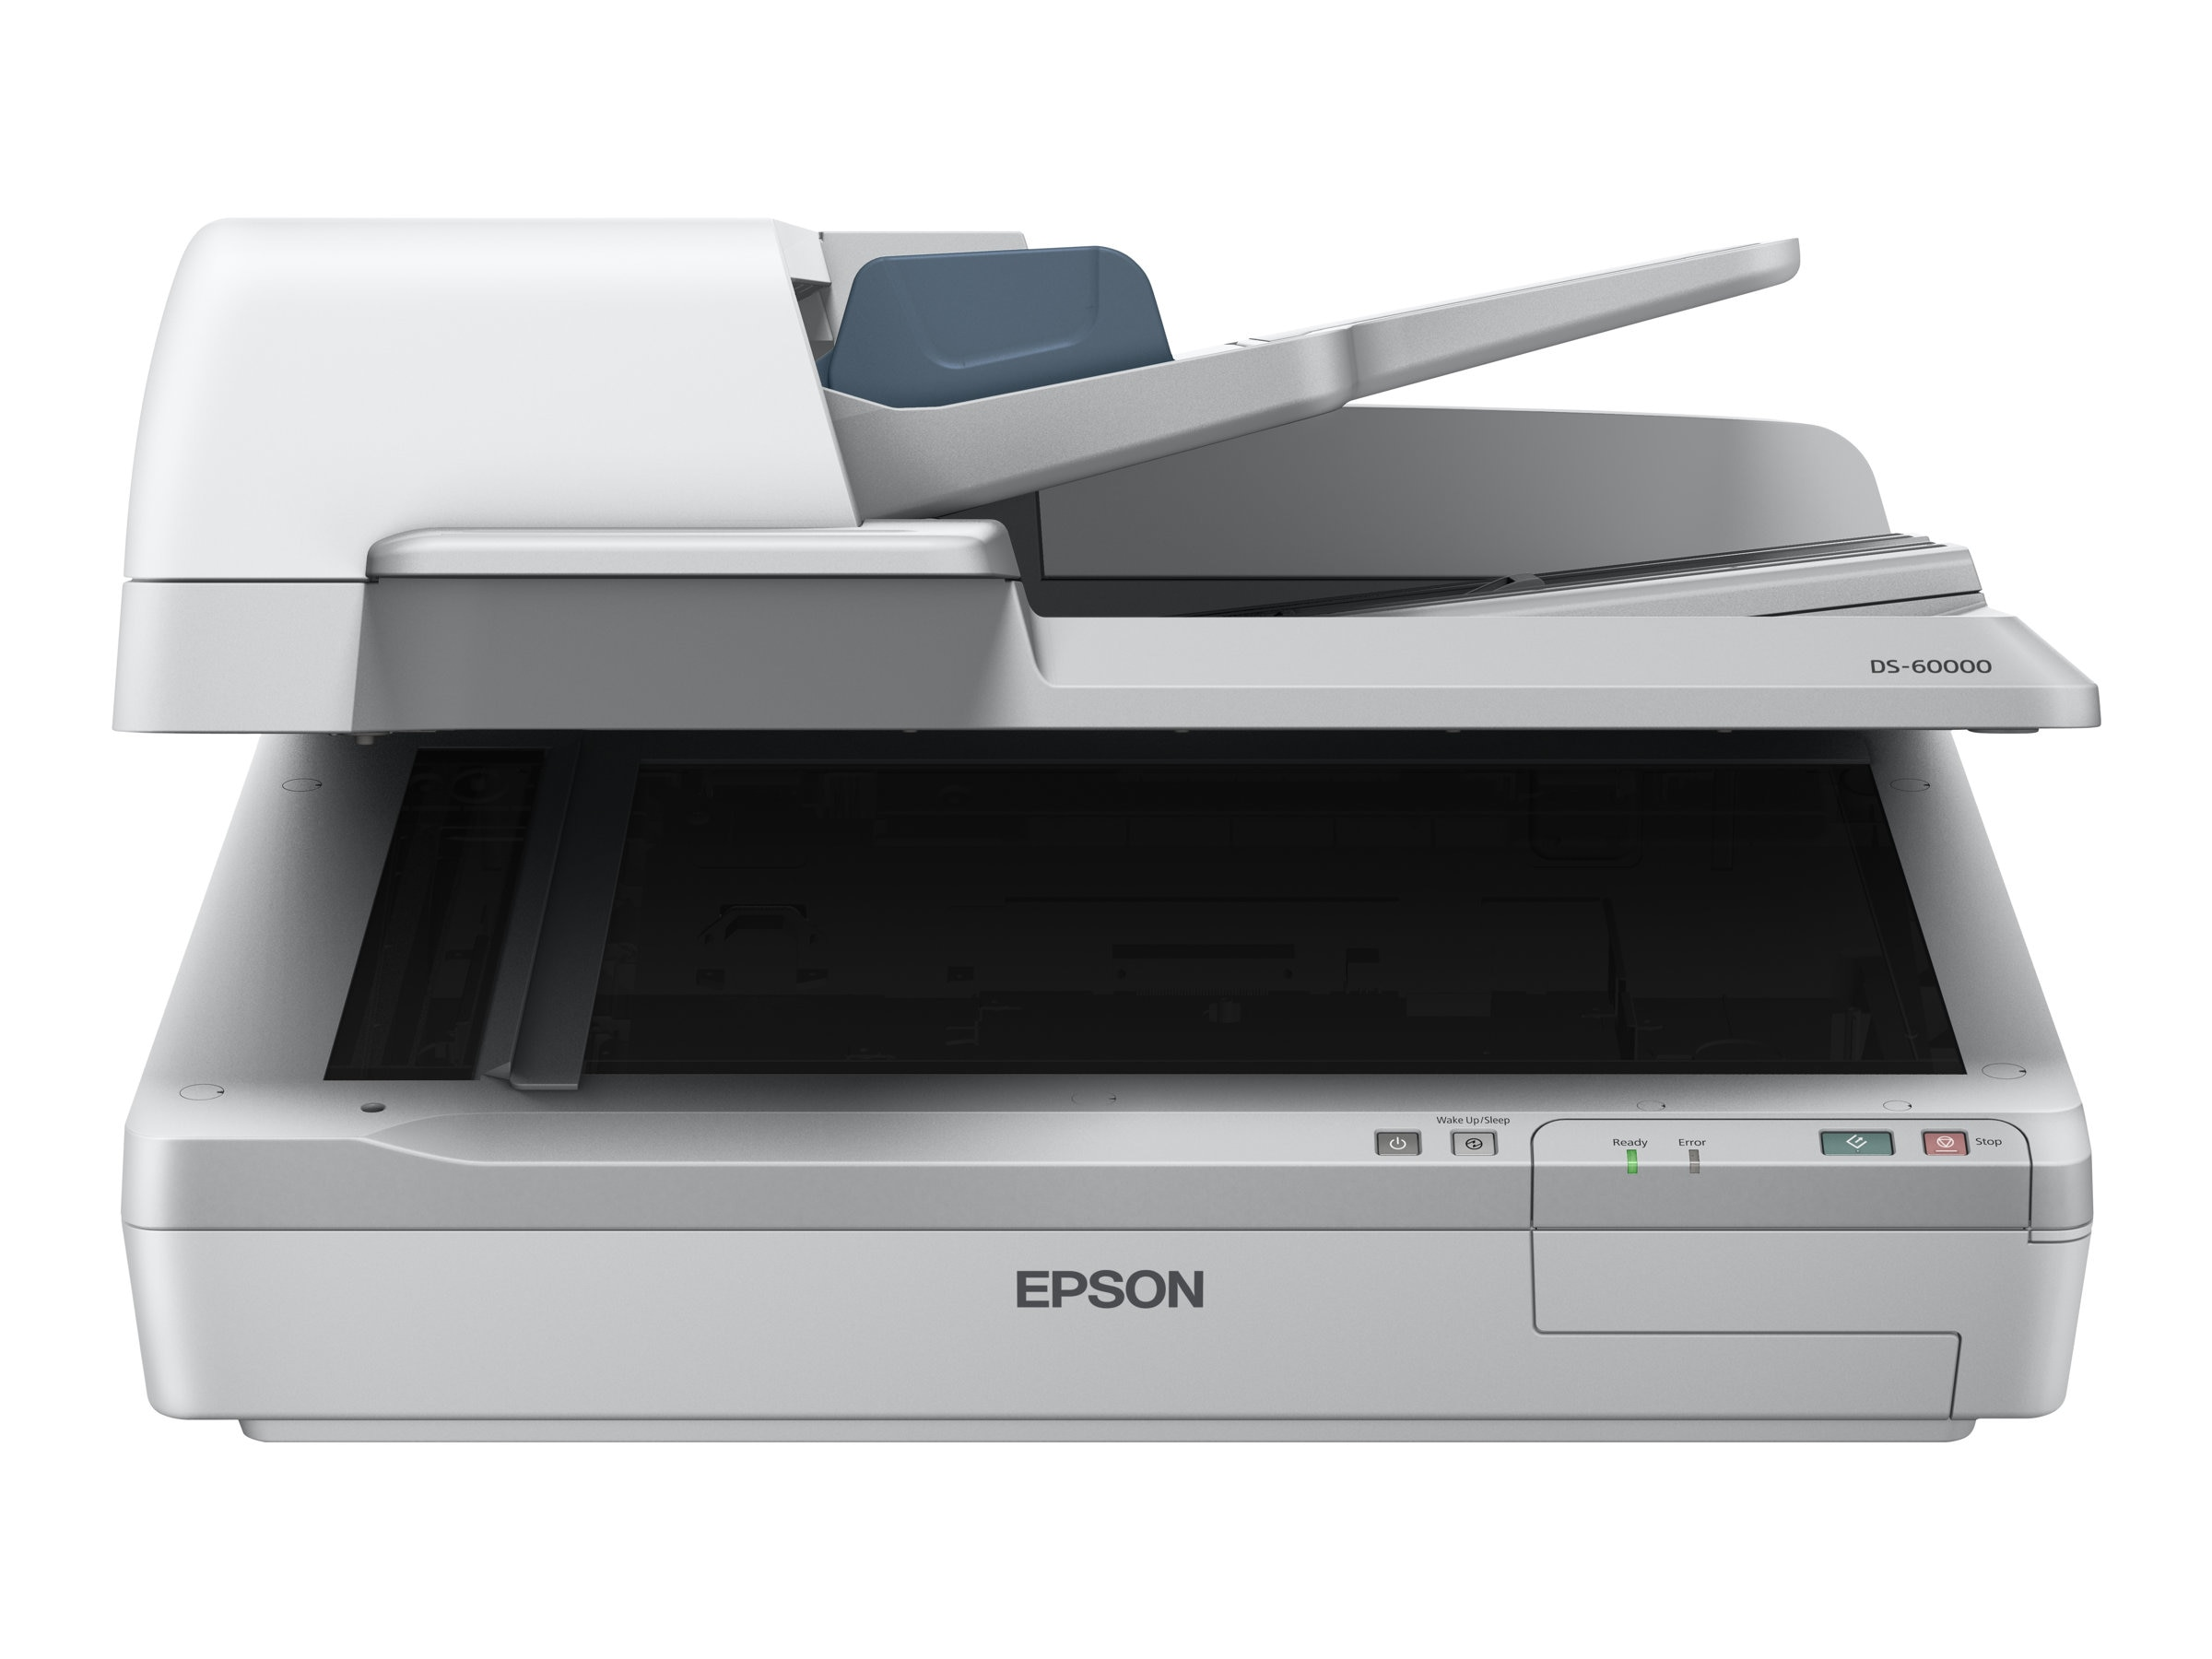 Epson Workforce DS-60000 Scanner -  $2899 less instant rebate of $100.00, B11B204221, 14777443, Scanners